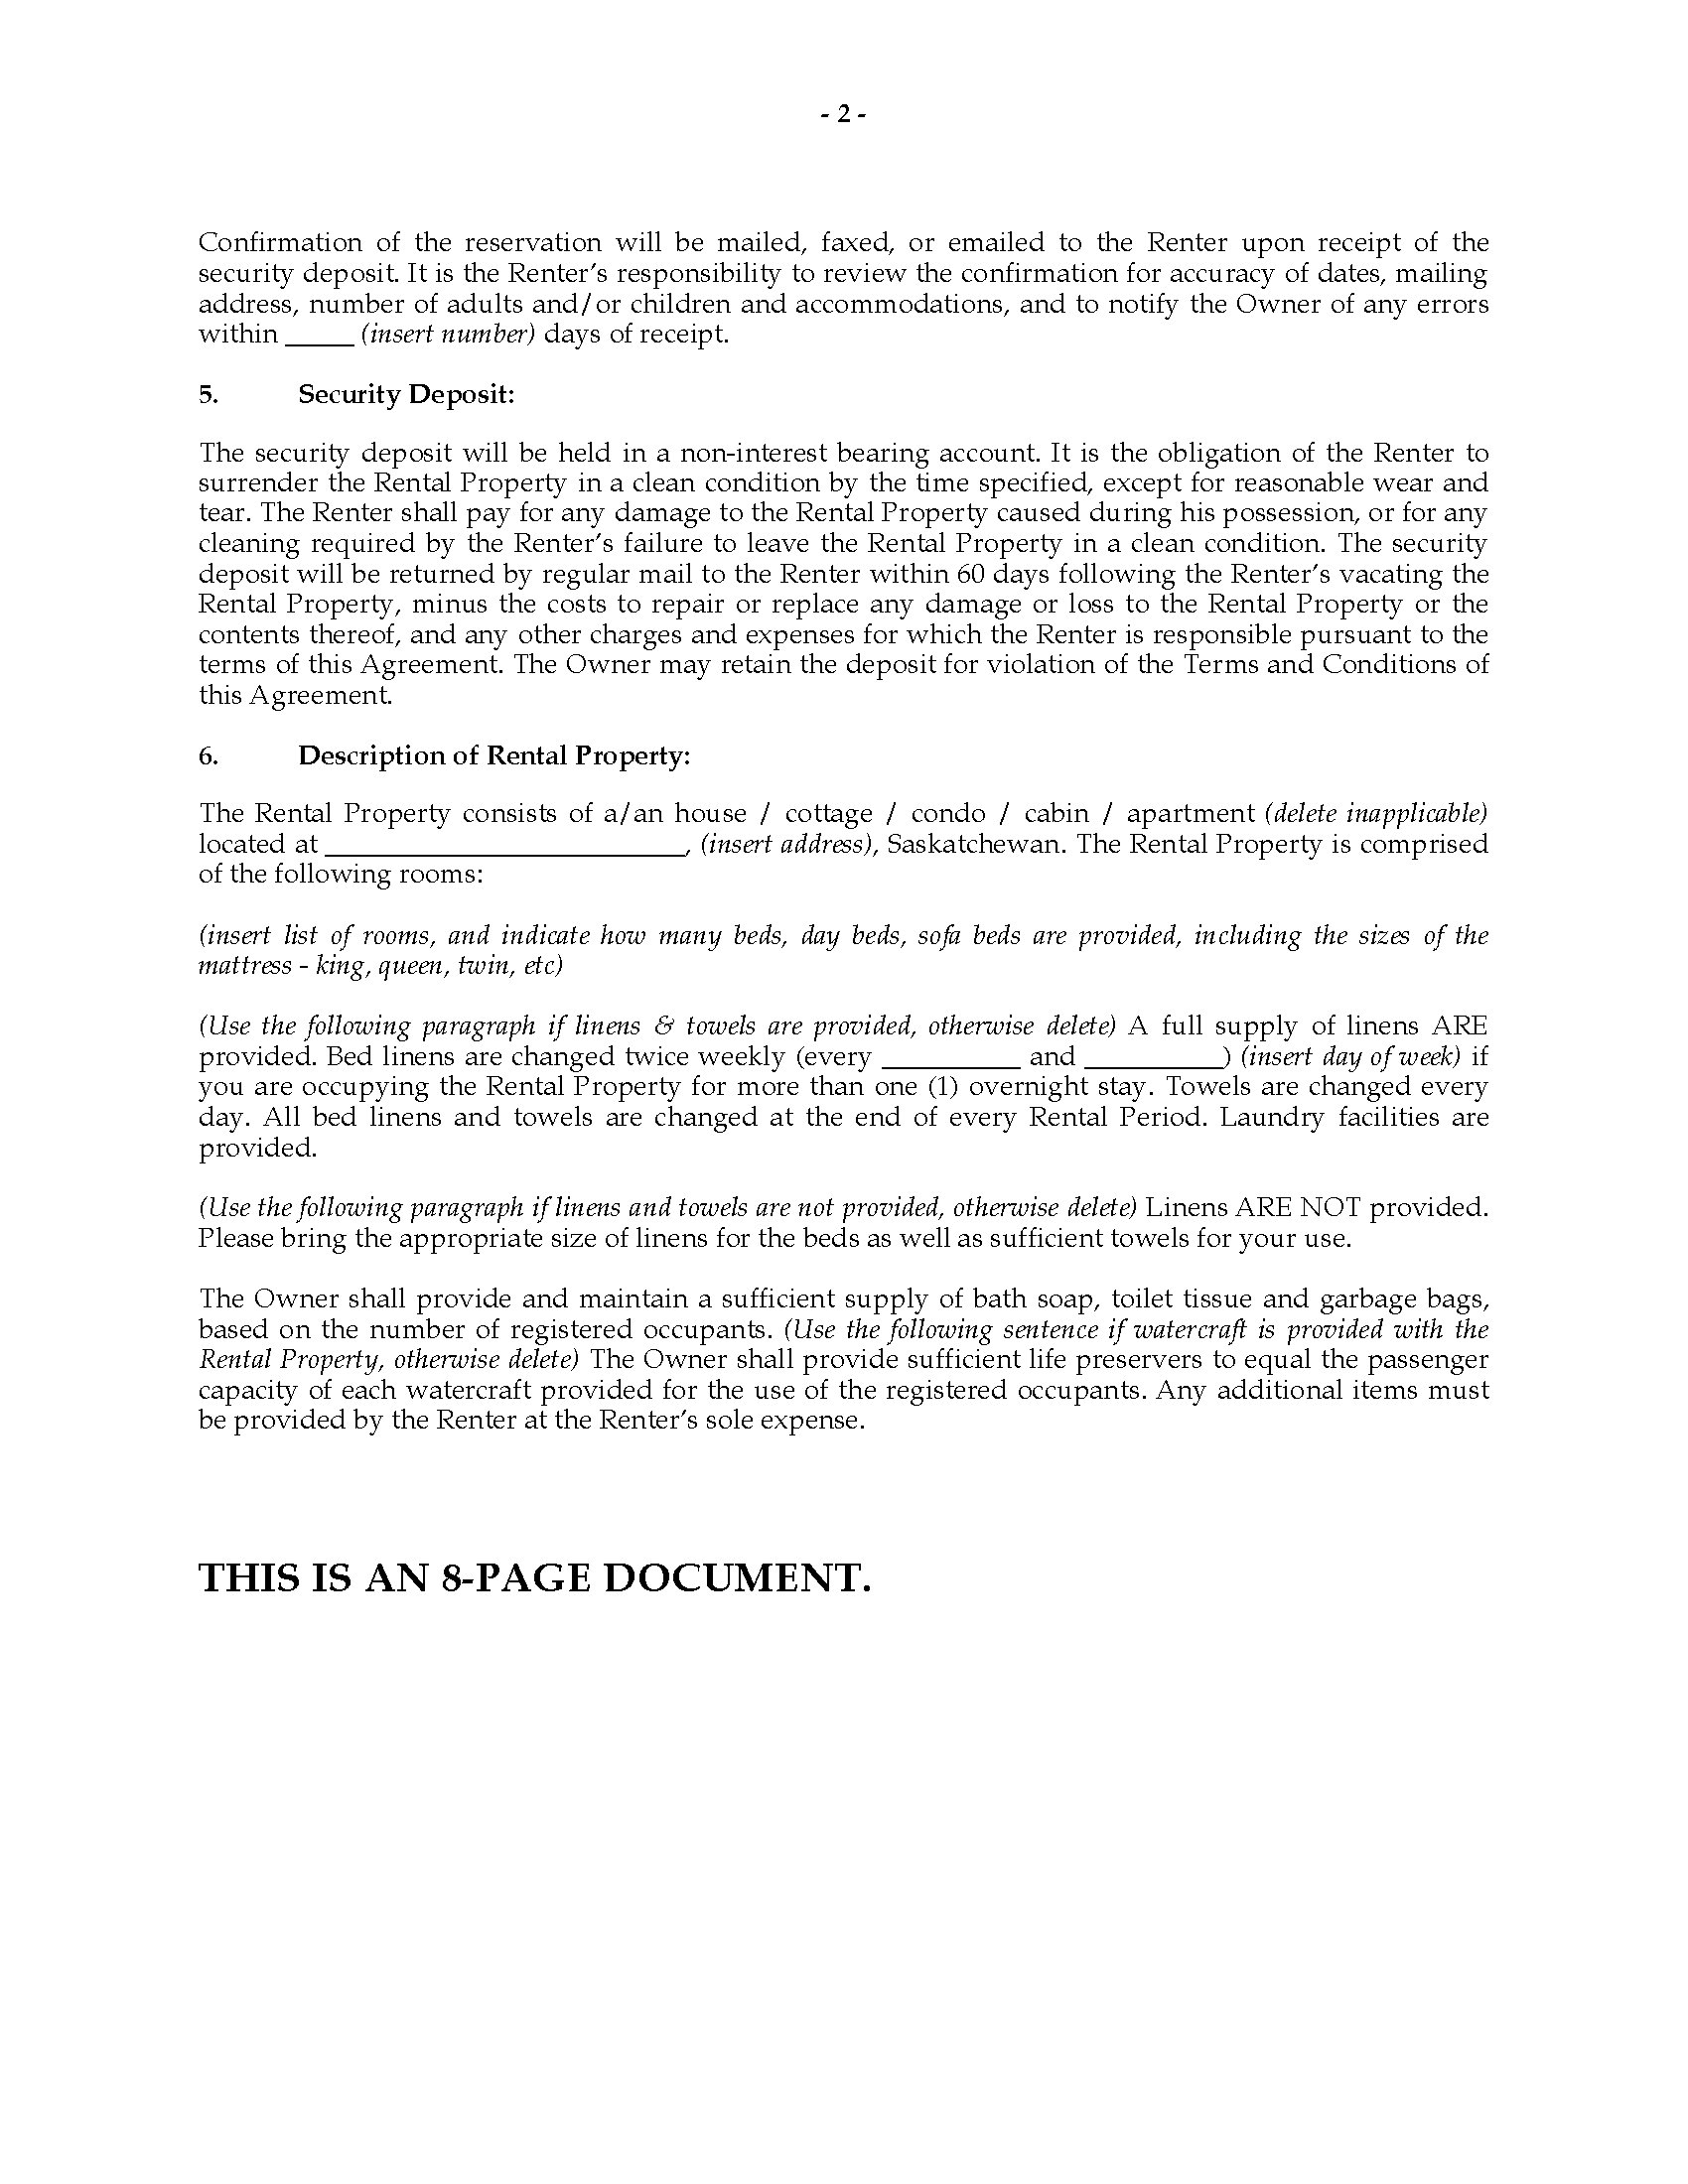 saskatchewan vacation property rental agreement legal forms and picture of saskatchewan vacation property rental agreement picture of saskatchewan vacation property rental agreement